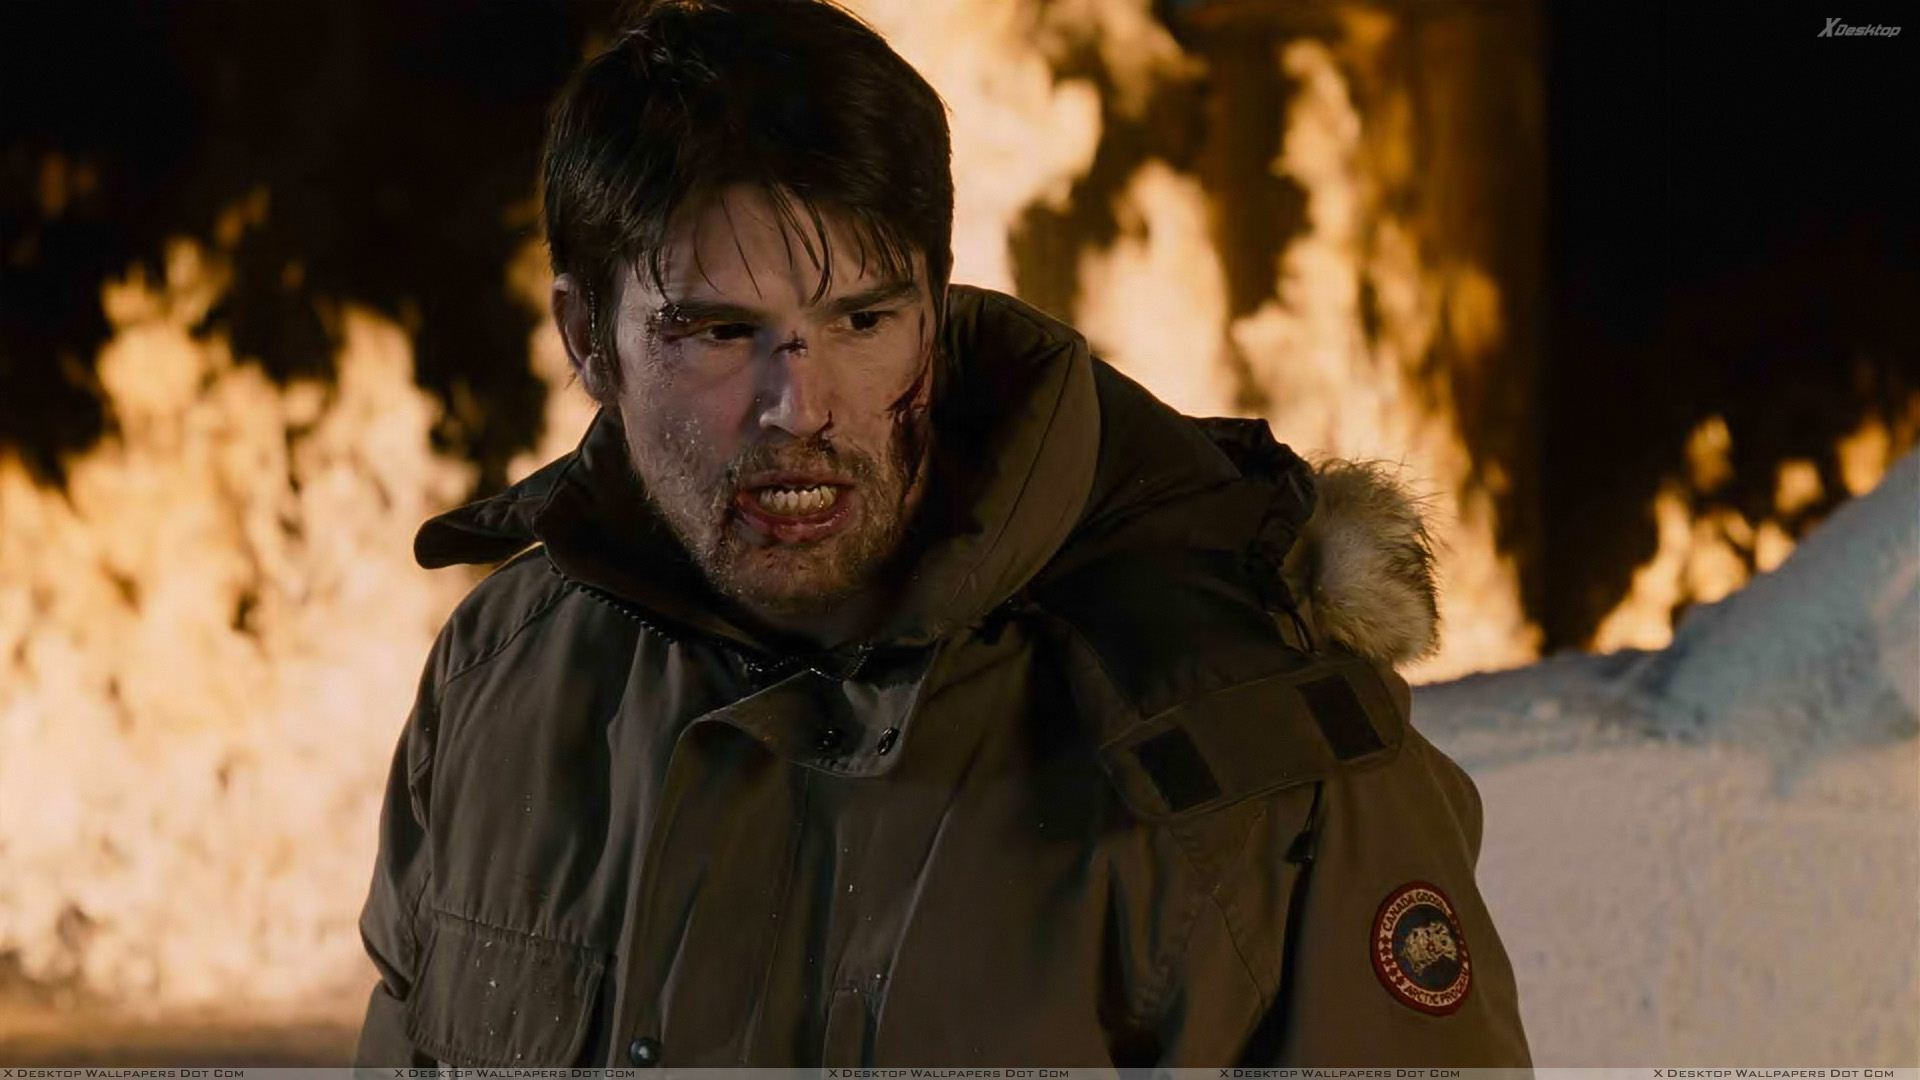 30 Days Of Night Josh Hartnett In Jacket Wallpaper